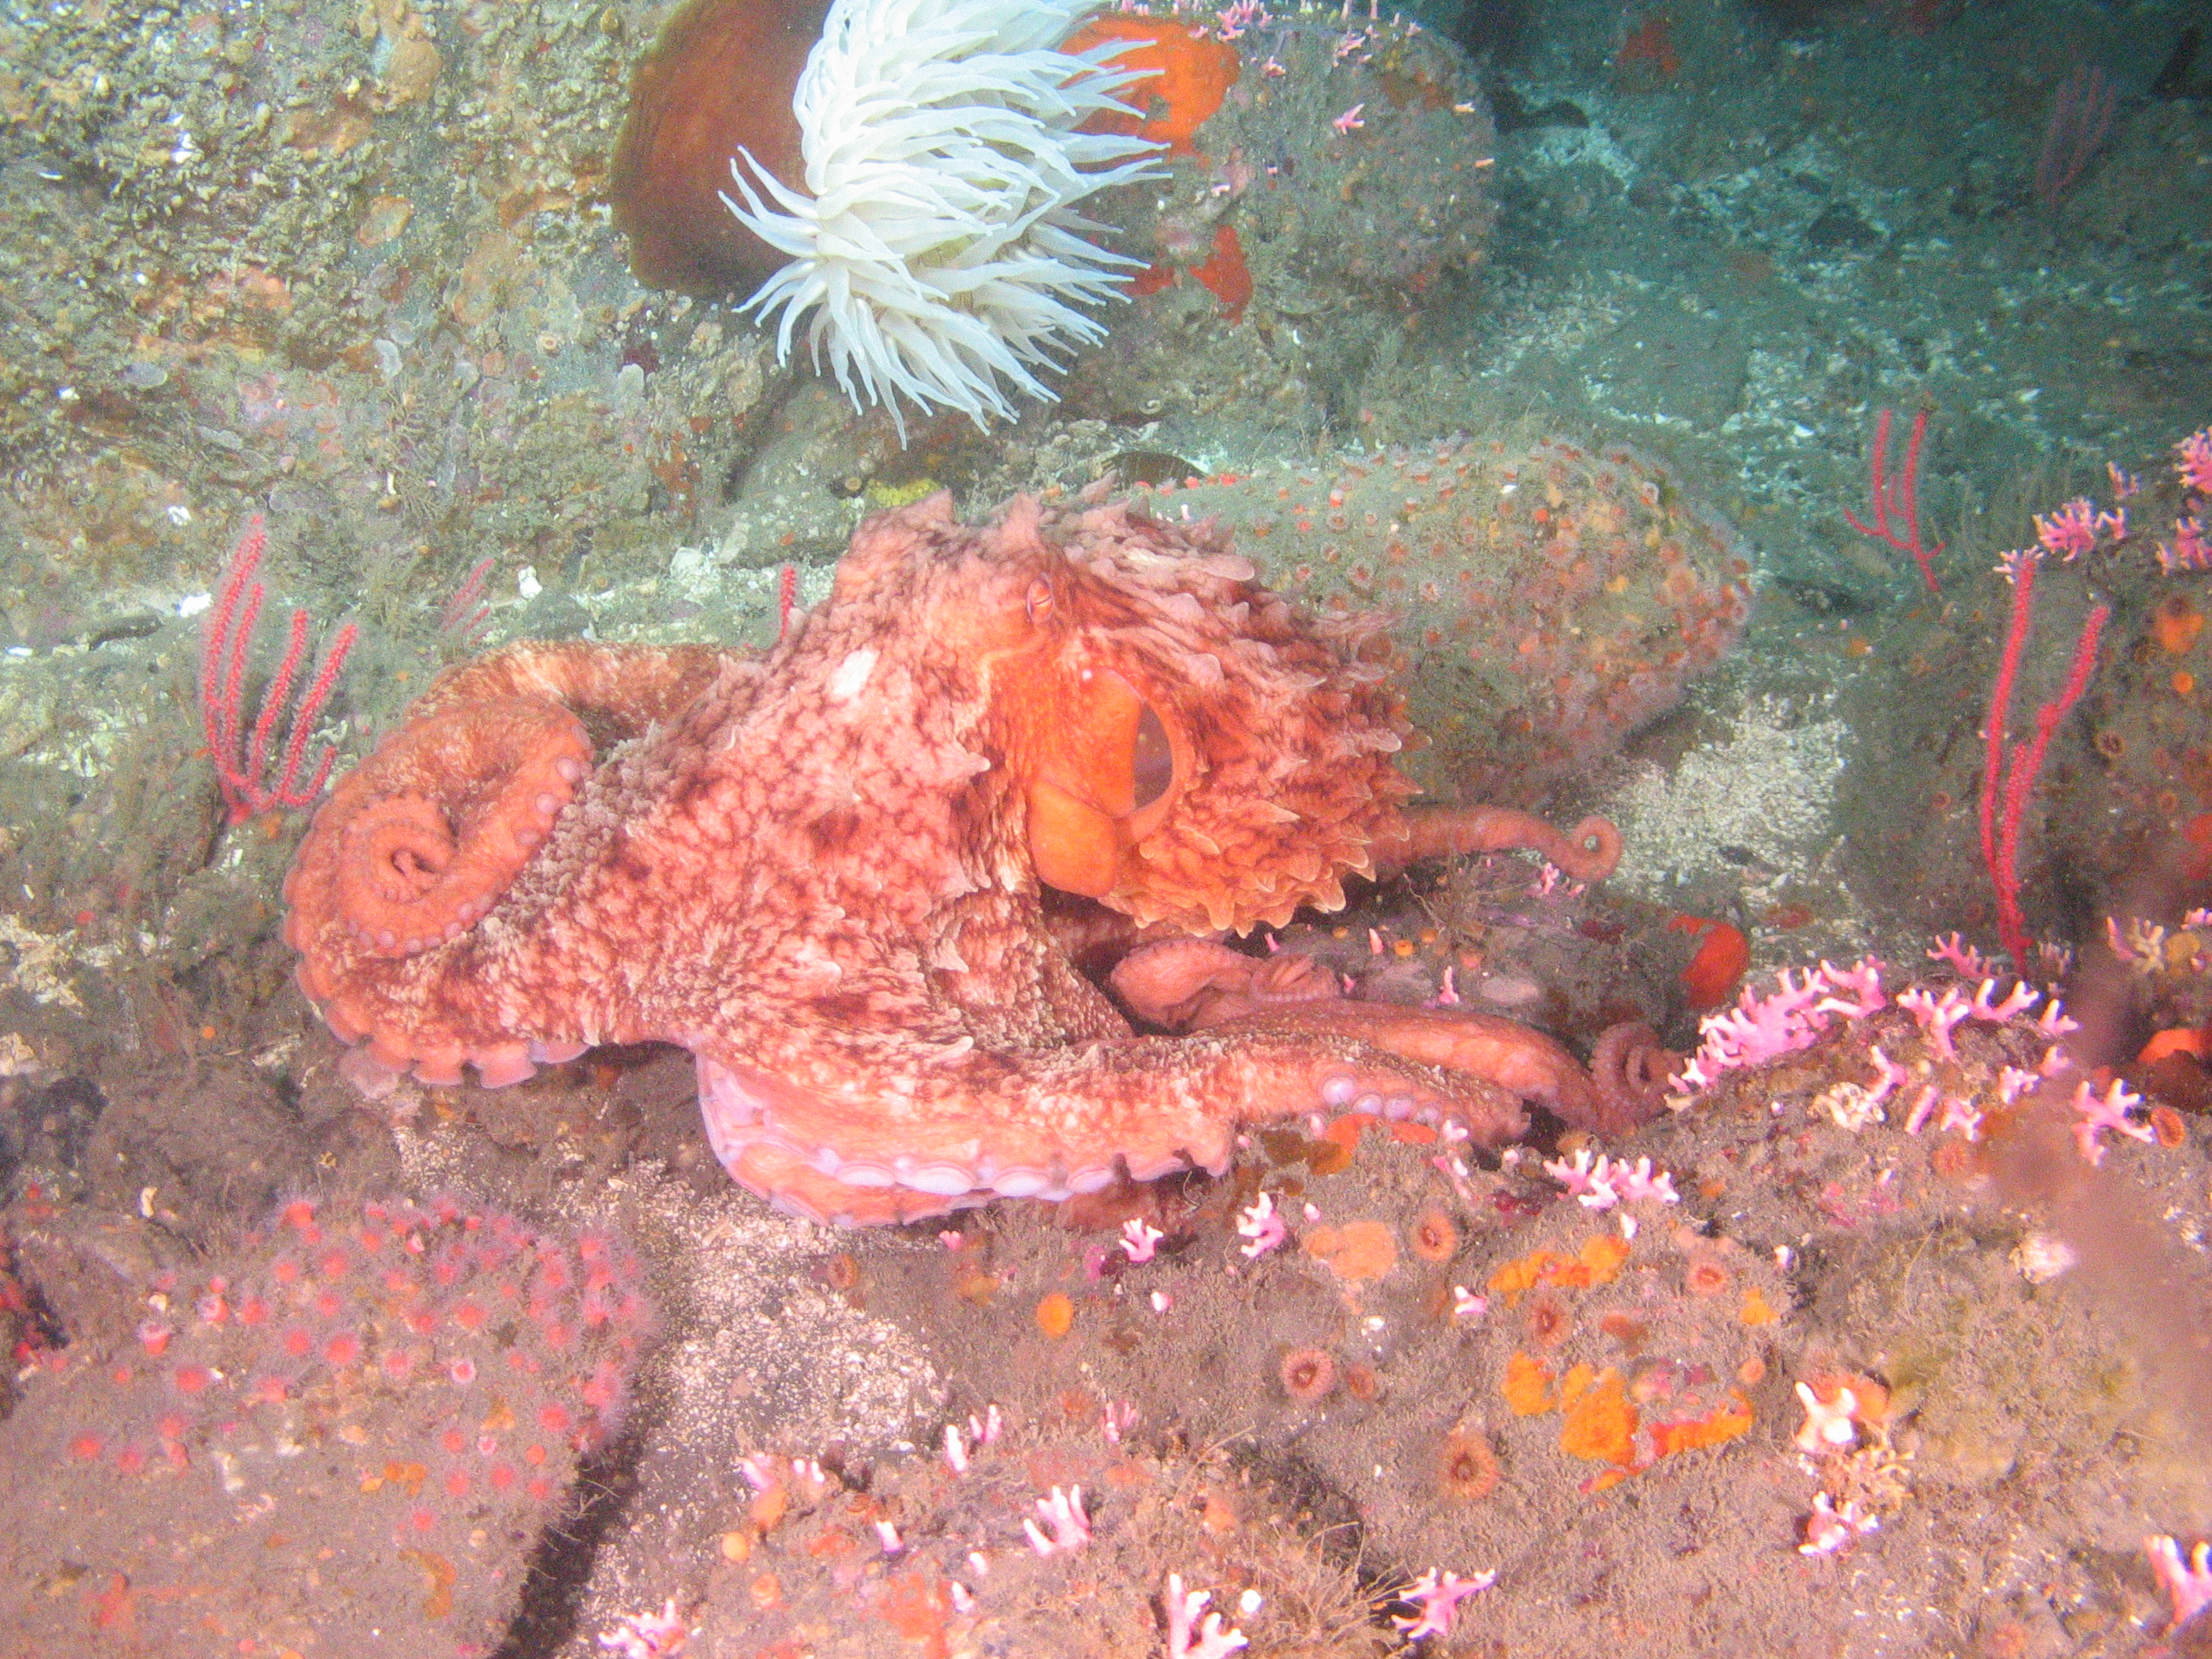 A giant Pacific octopus was observed near Point Arena SMR.